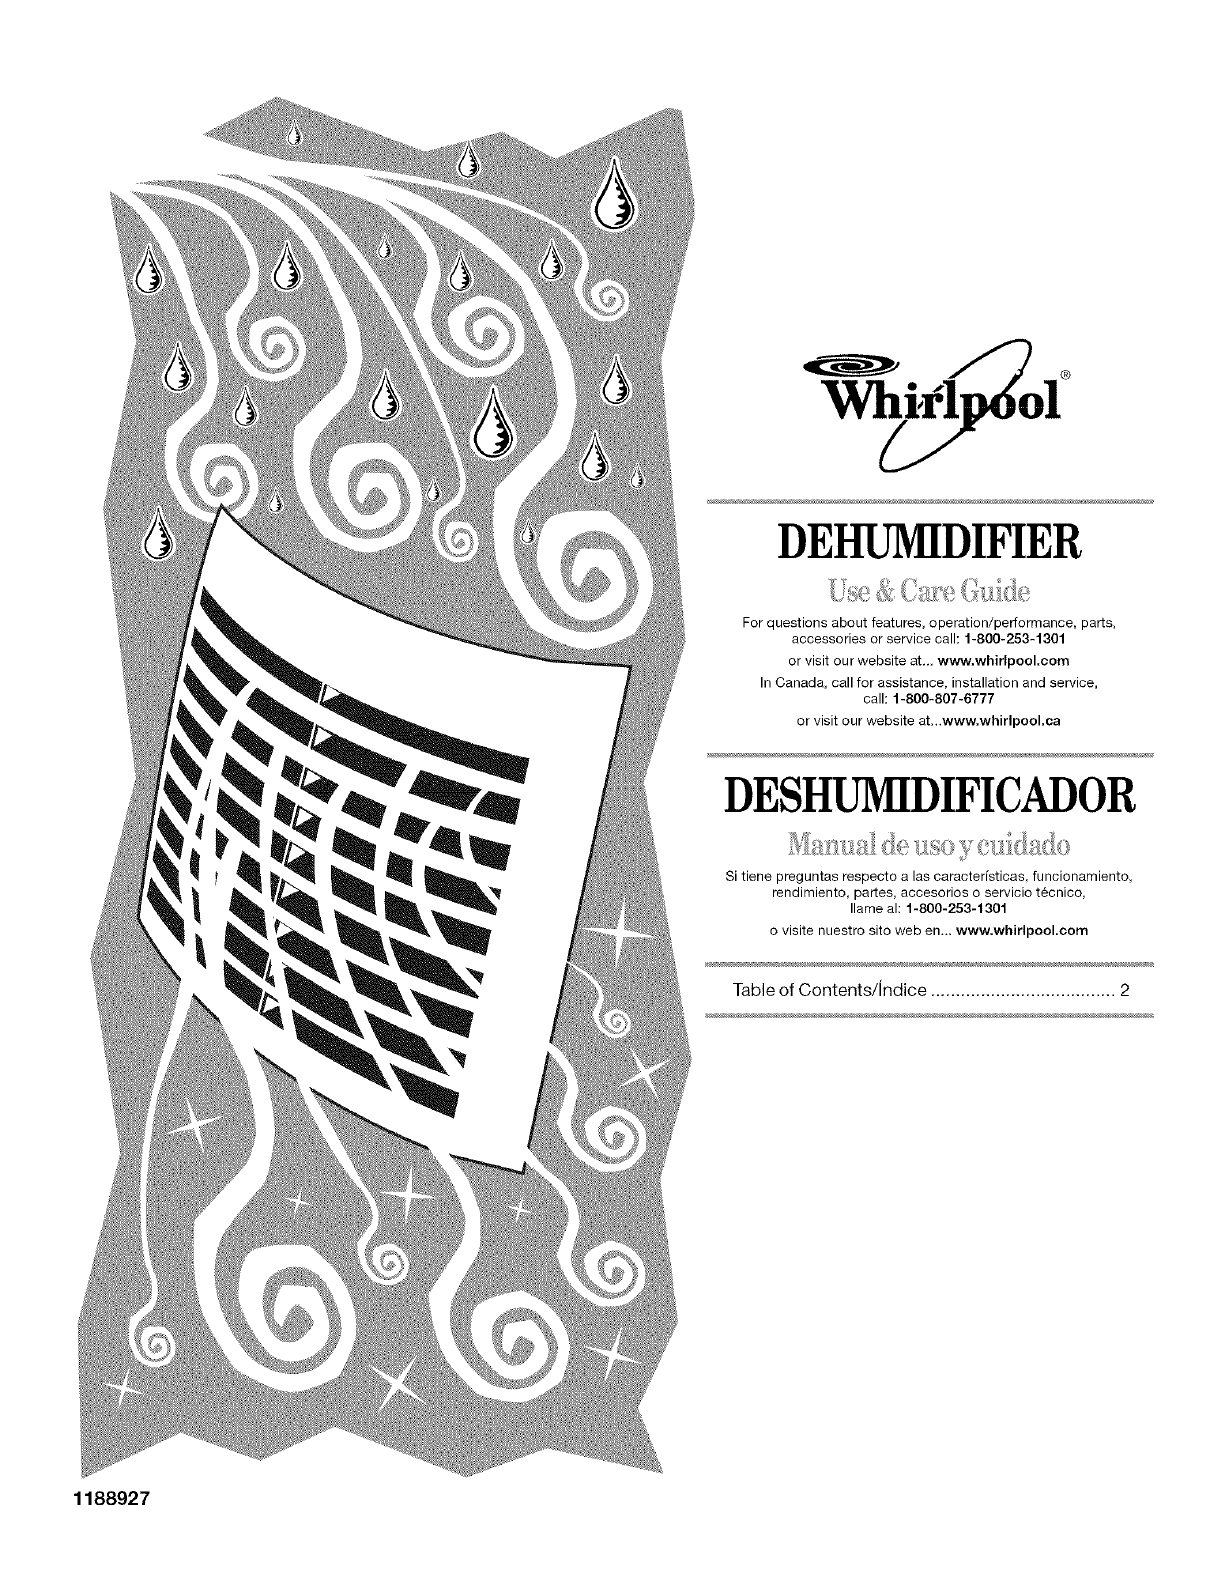 whirlpool dehumidifier ad25b user guide manualsonline com whirlpool dehumidifier user manual whirlpool dehumidifier use and care guide